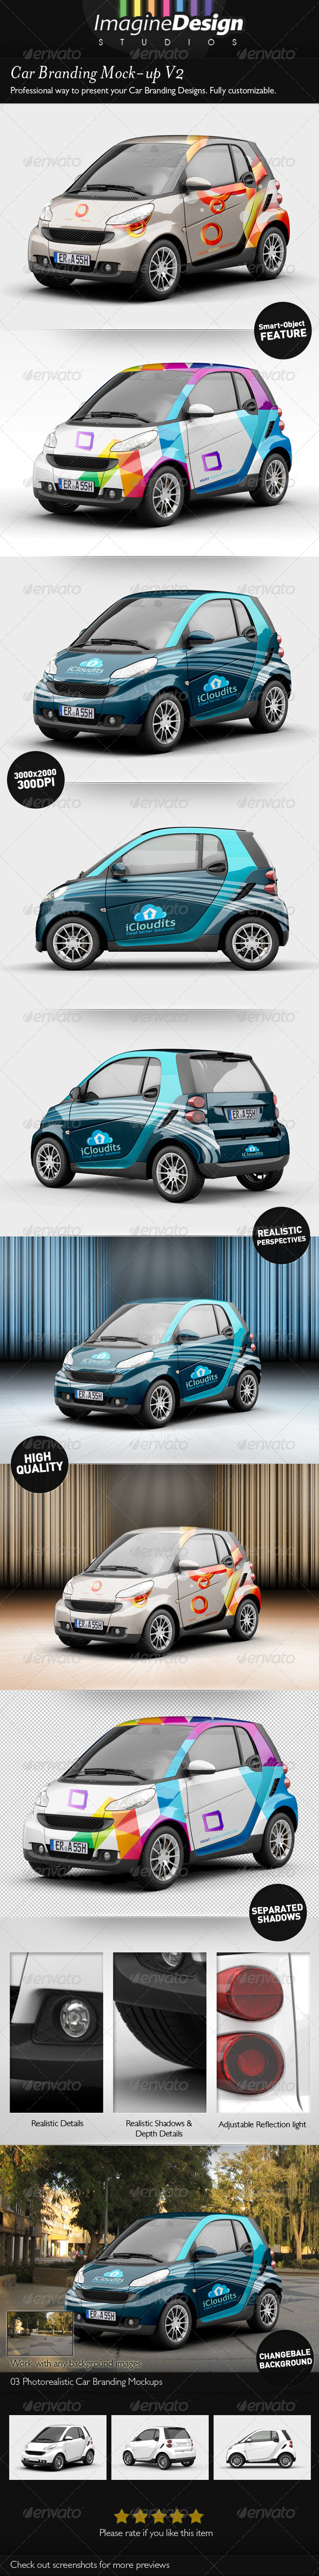 Car Branding Mock-up V2 - Vehicle Wraps Print